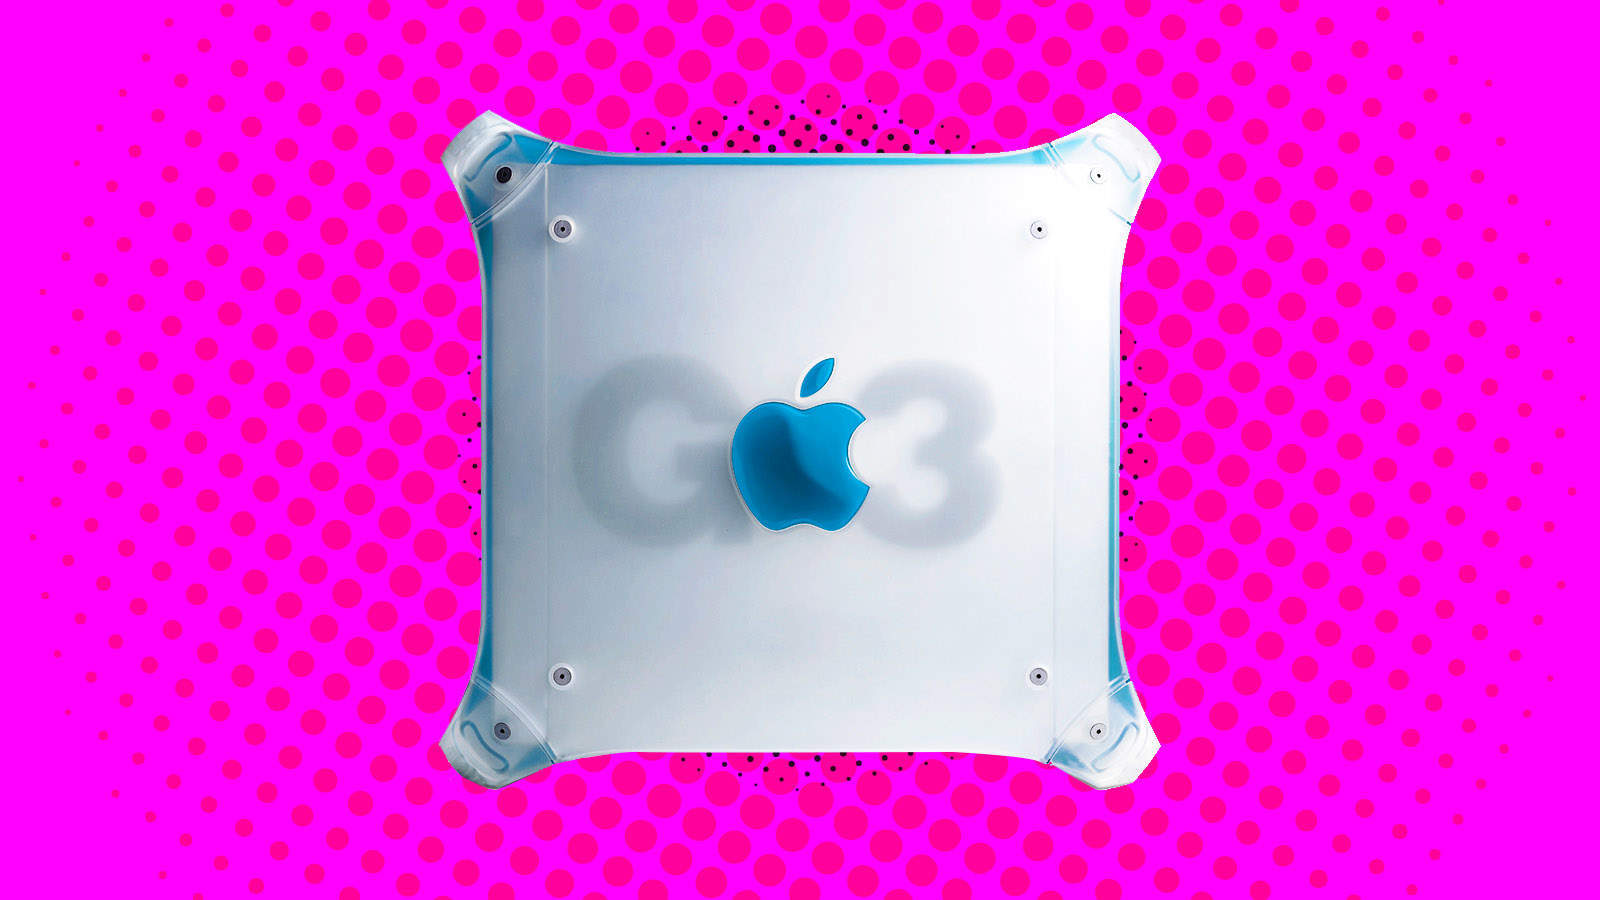 The Power Mac G3 brought a new look, and powerful new features, to Apple's pro computer line.